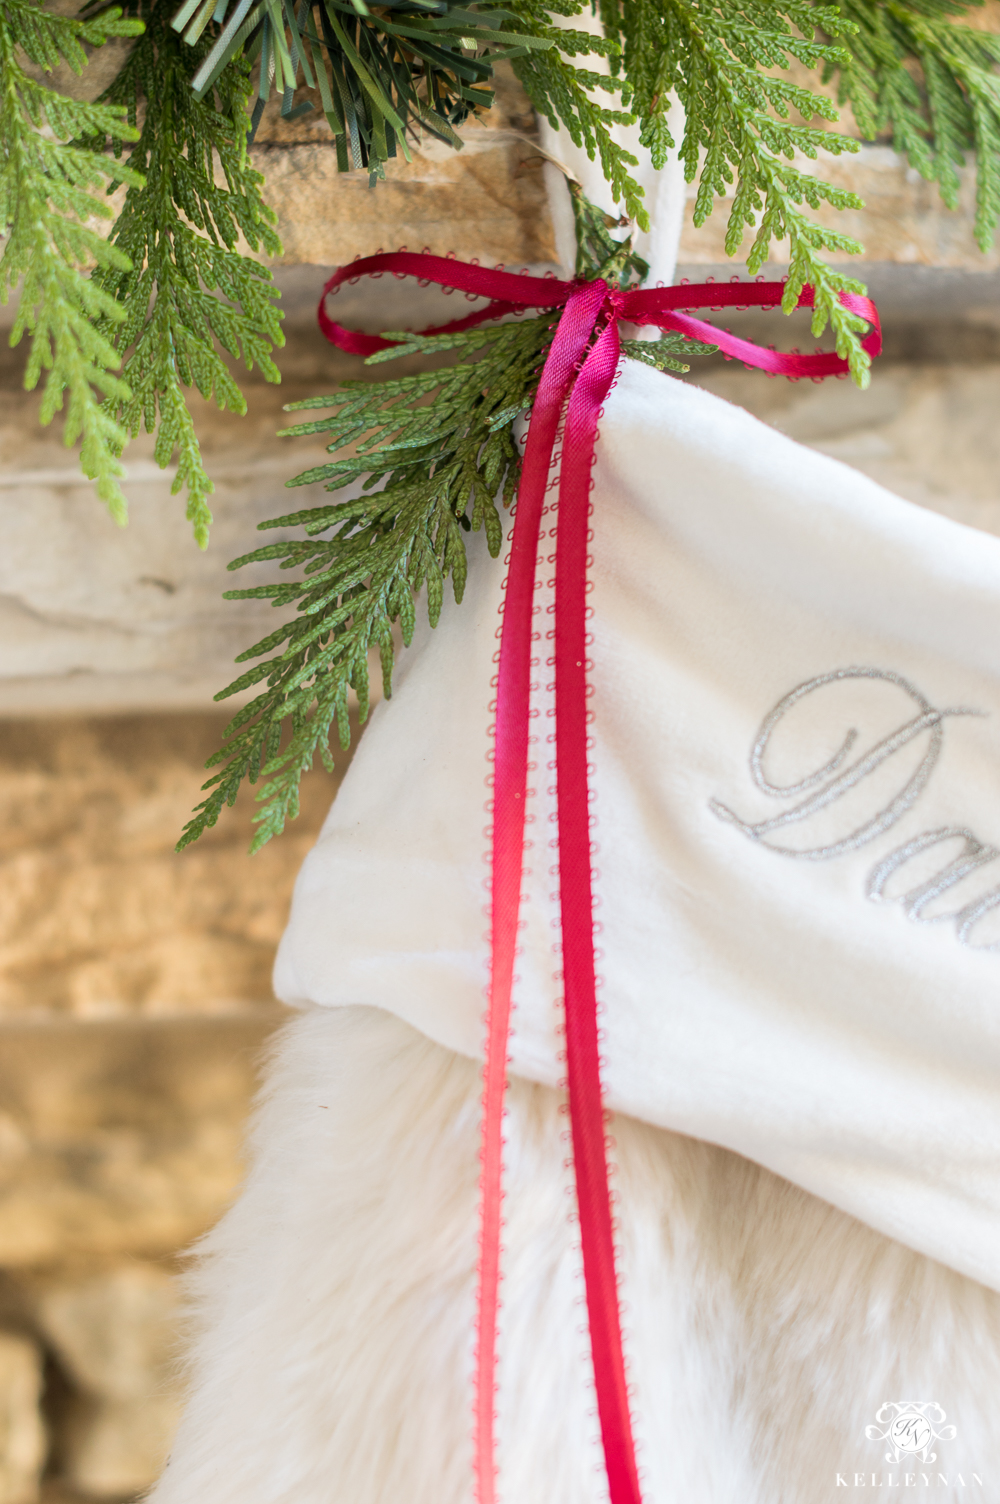 Christmas stocking mantel hook ideas